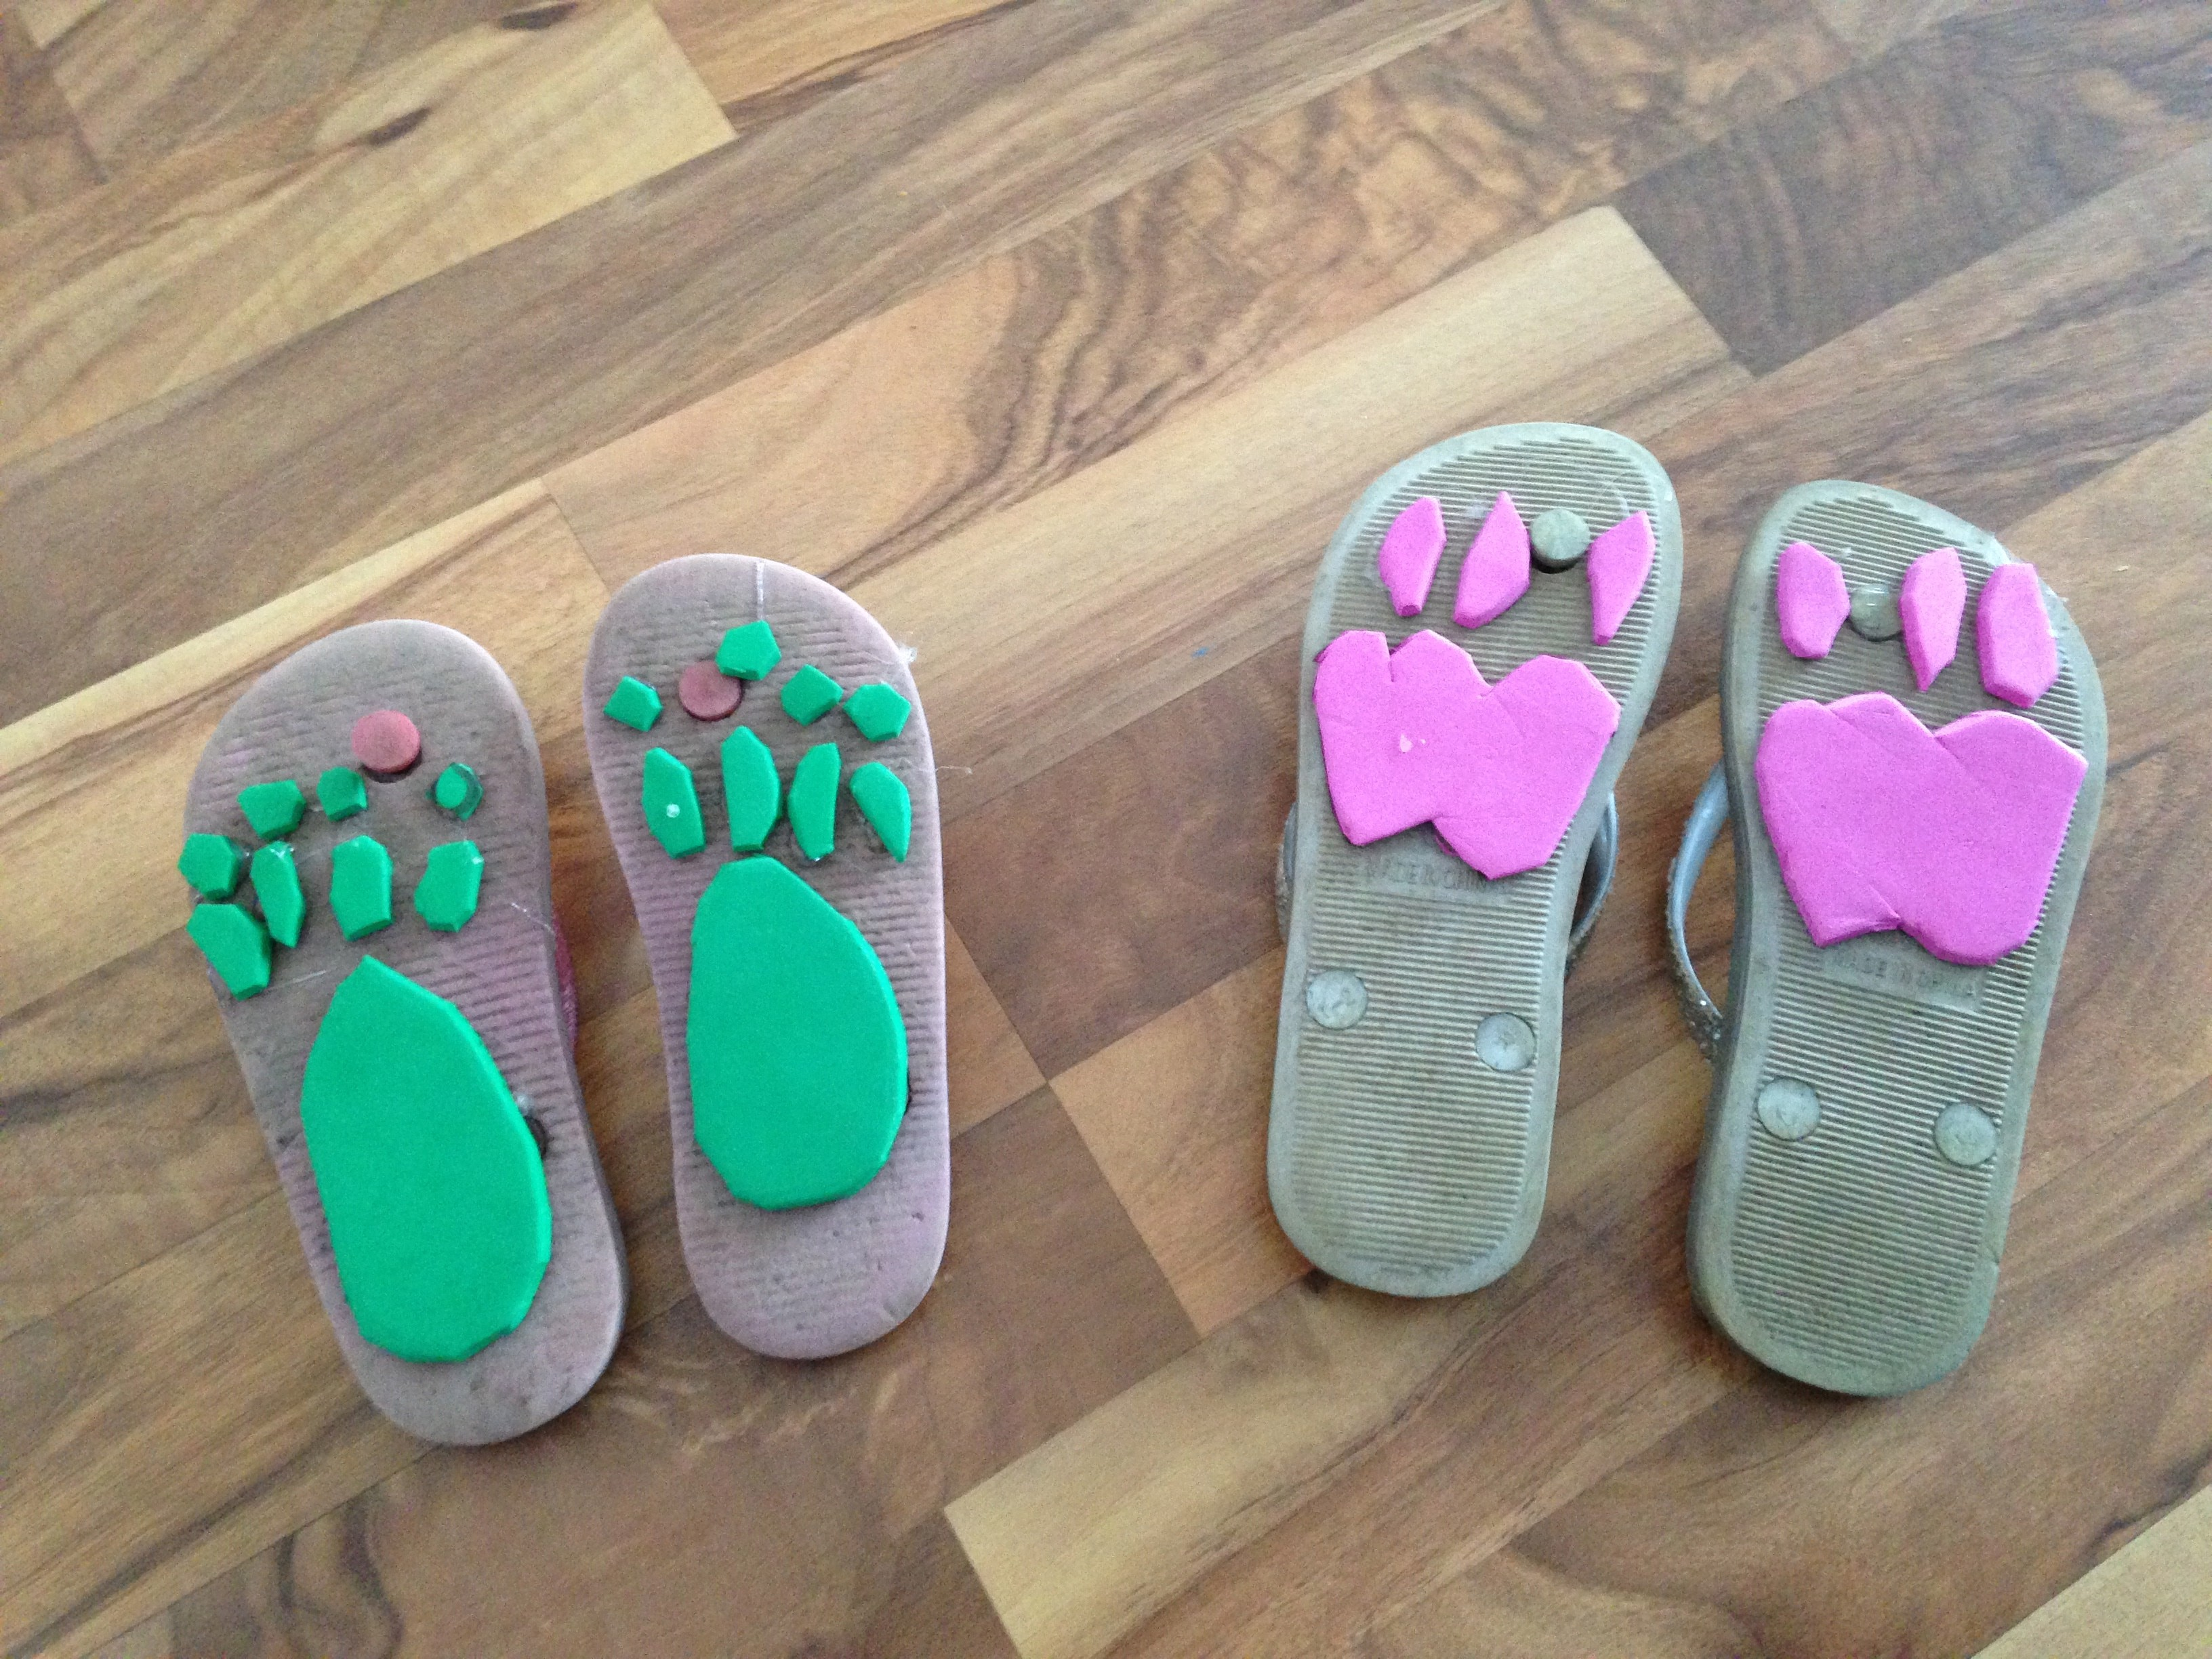 2a3f04672286 Animal Footprint Shoes - Green Kid Crafts